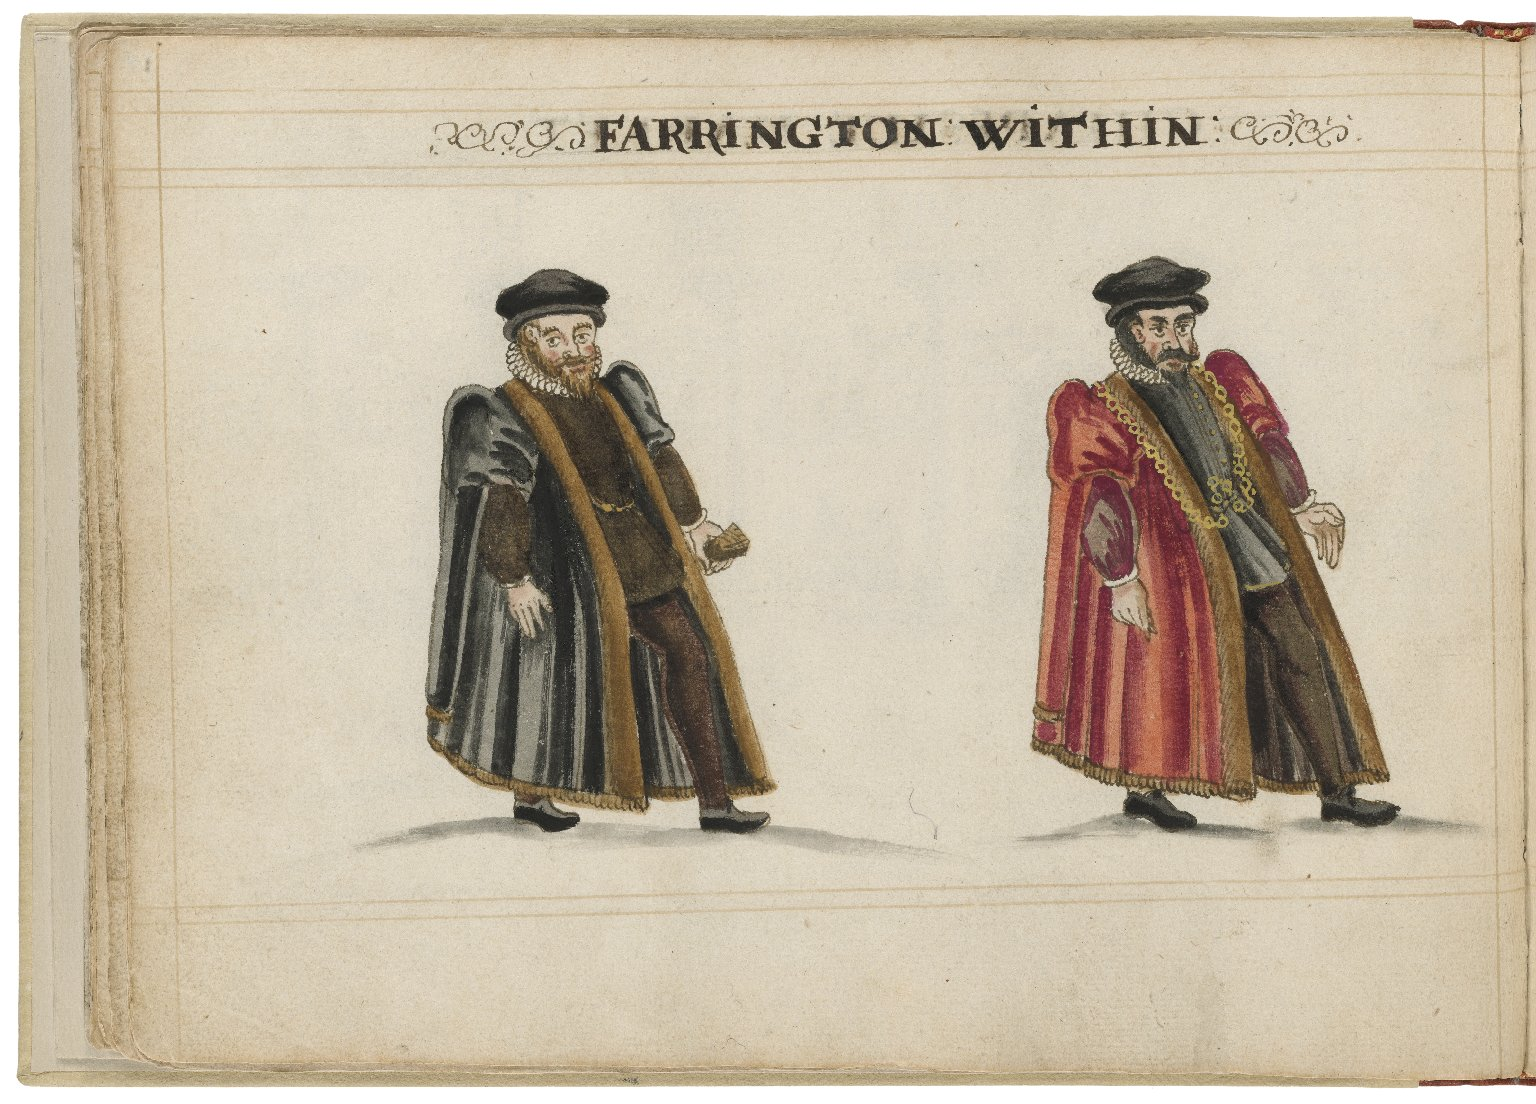 Watercolour painting of the alderman and deputy in charge of Farringdon Within Ward by Hugh Alley. Image courtesy of the Folger Digital Image Collection.